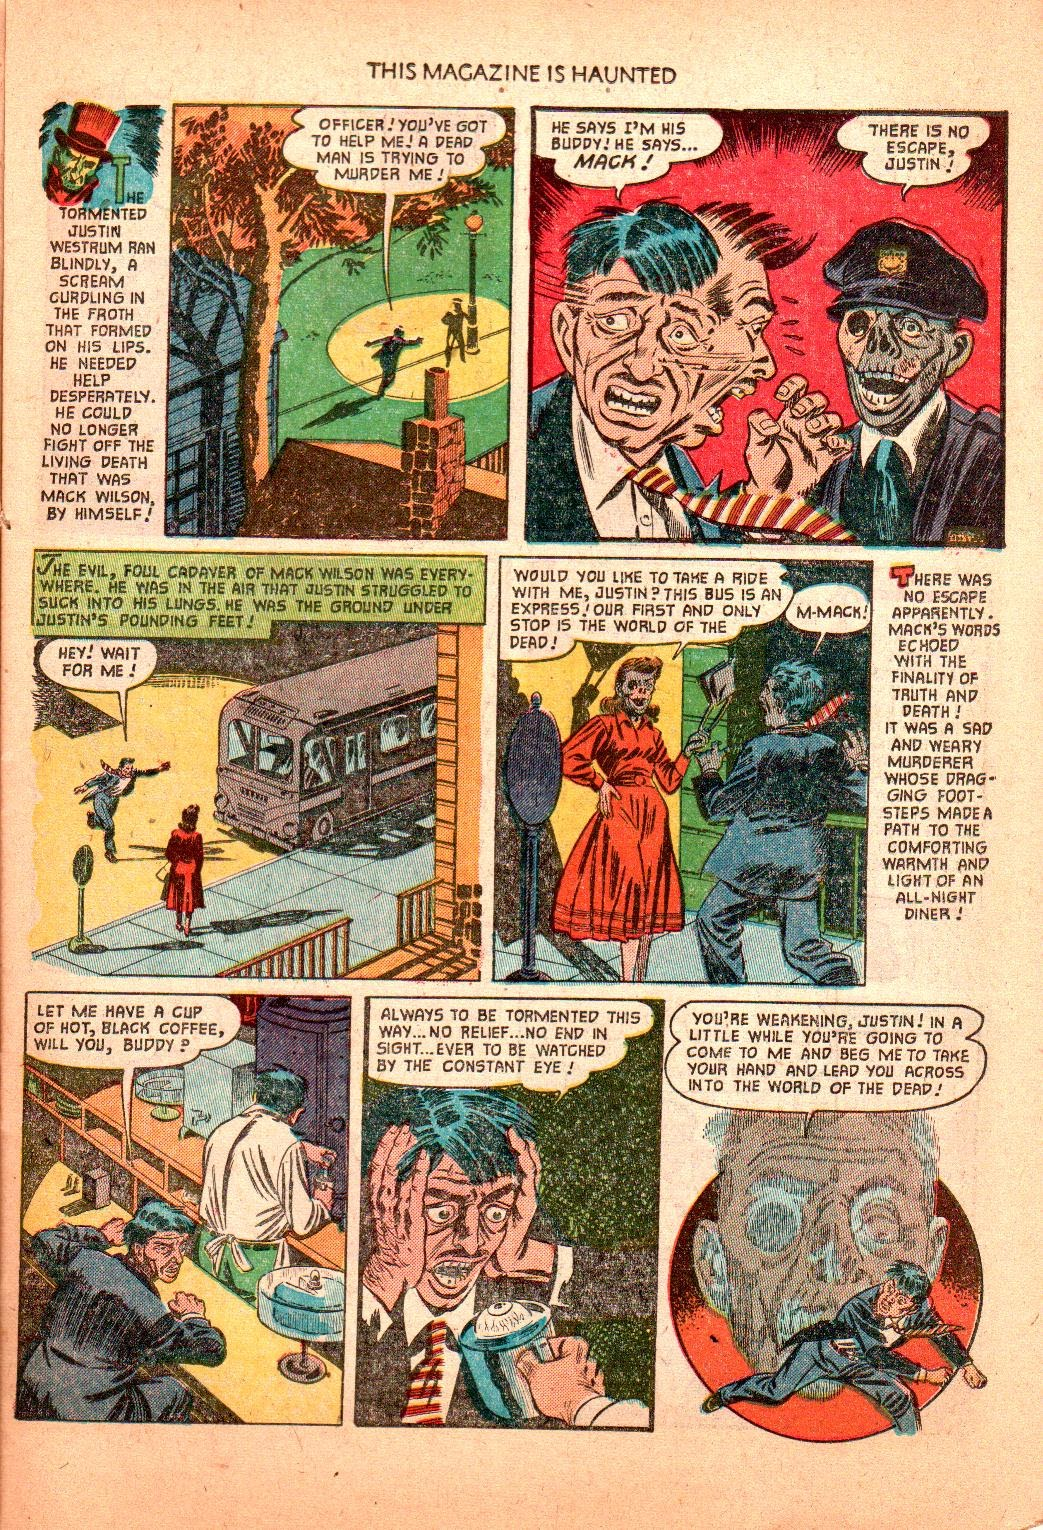 Read online This Magazine Is Haunted comic -  Issue #4 - 11